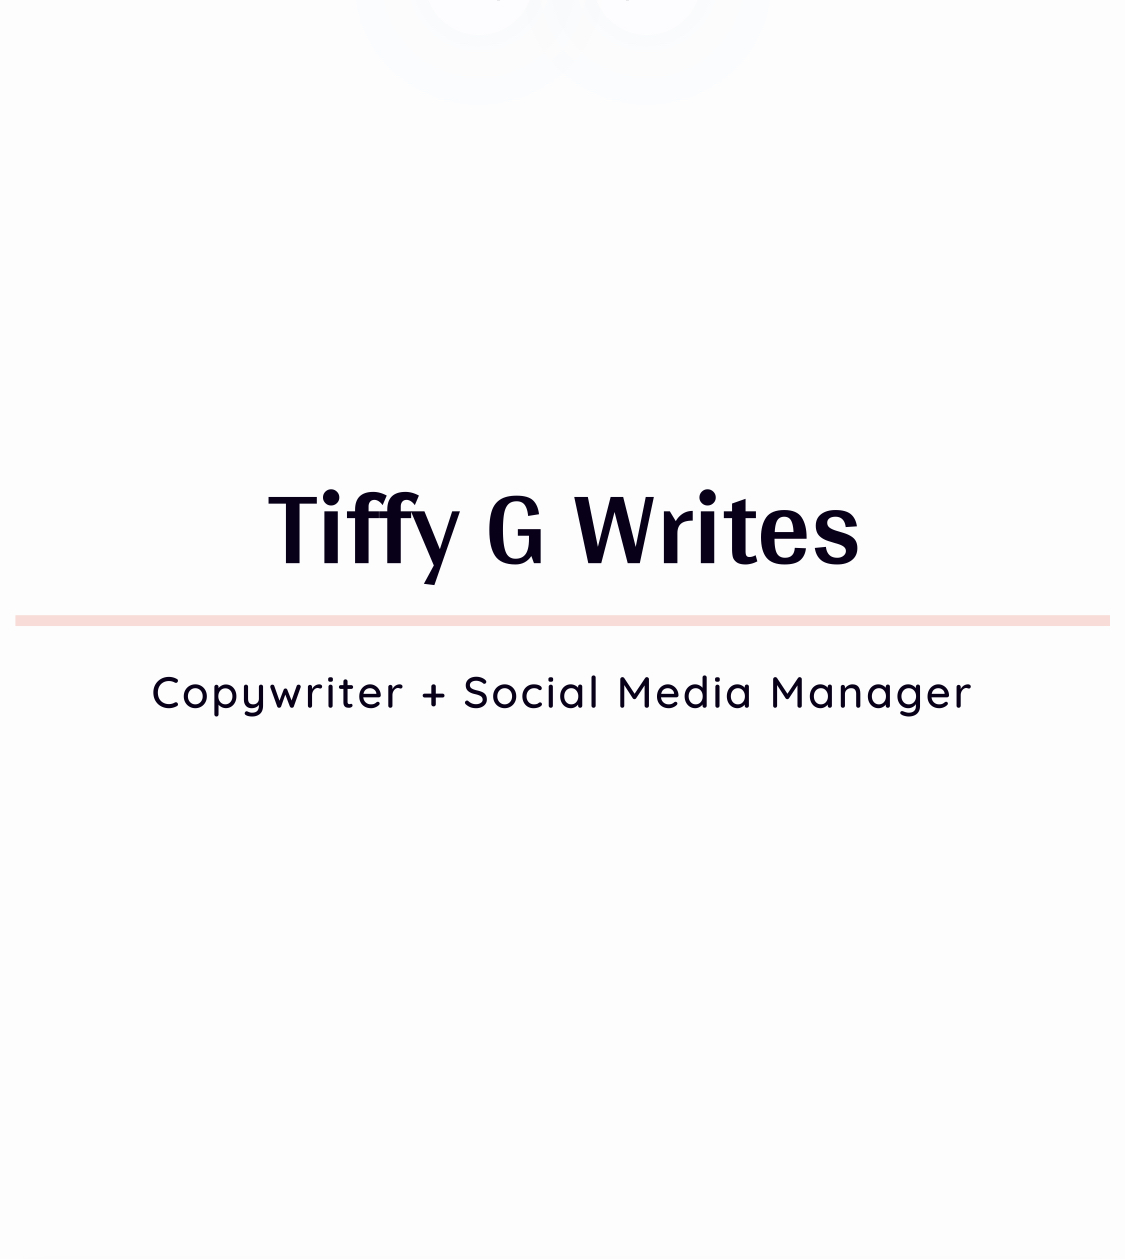 tiffy g writes black copywriter social media manager in columbus ohio freelance copywriter tiffany garside